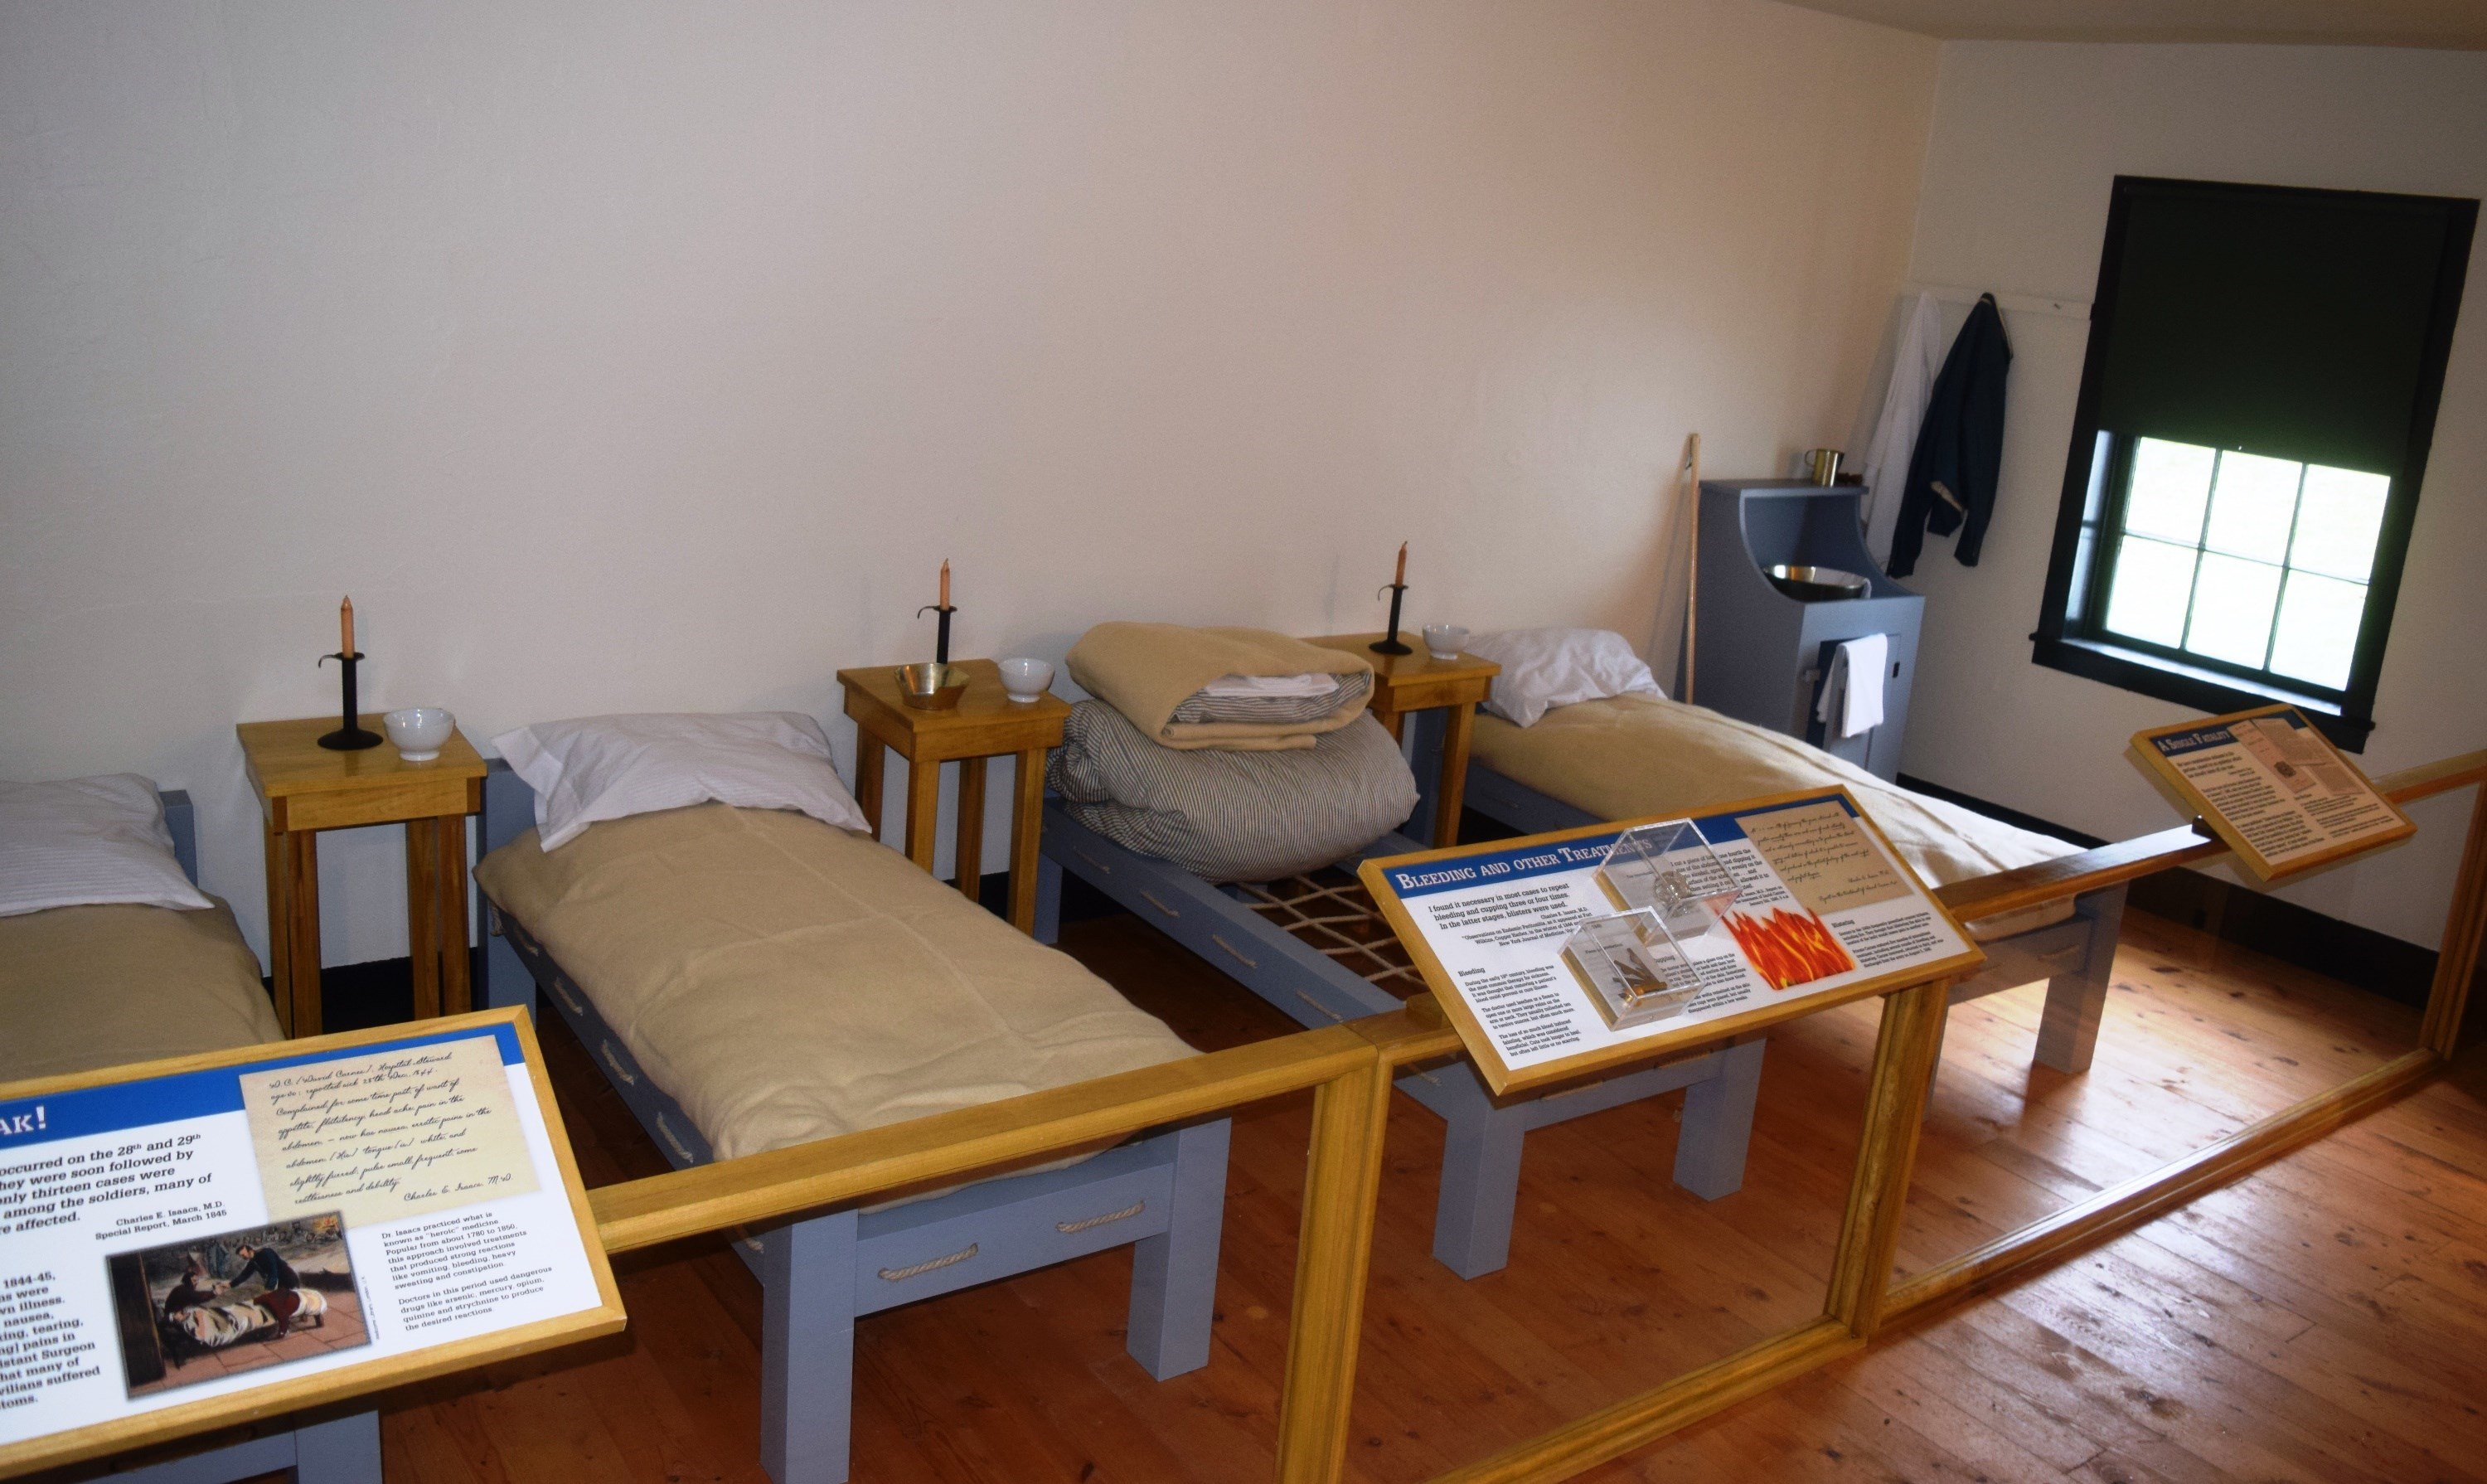 A new exhibit at Fort Wilkins Historic State Park in Copper Harbor takes visitors into the actual hospital ward where sick soldiers were cared for during a mysterious epidemic there more than 150 years ago (Source: DNR)